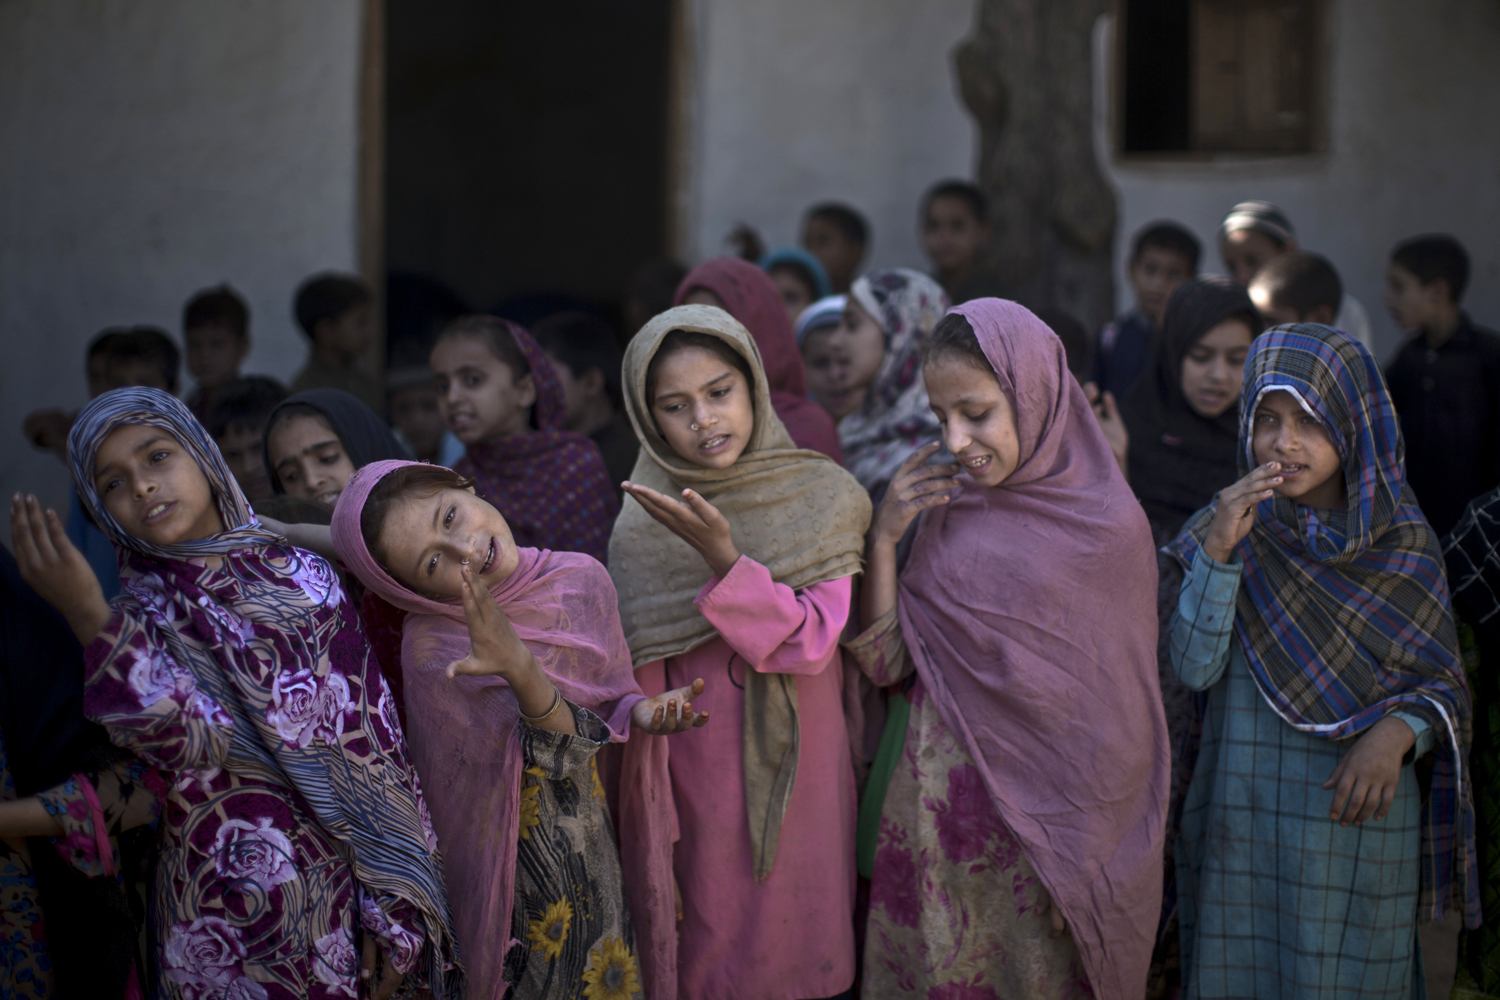 Oct. 14, 2013. Pakistani schoolgirls, who were displaced with their families from Pakistan's tribal areas due to fighting between the Taliban and the army, sing with their teacher before starting their classes, at their makeshift school on the outskirts of Islamabad.